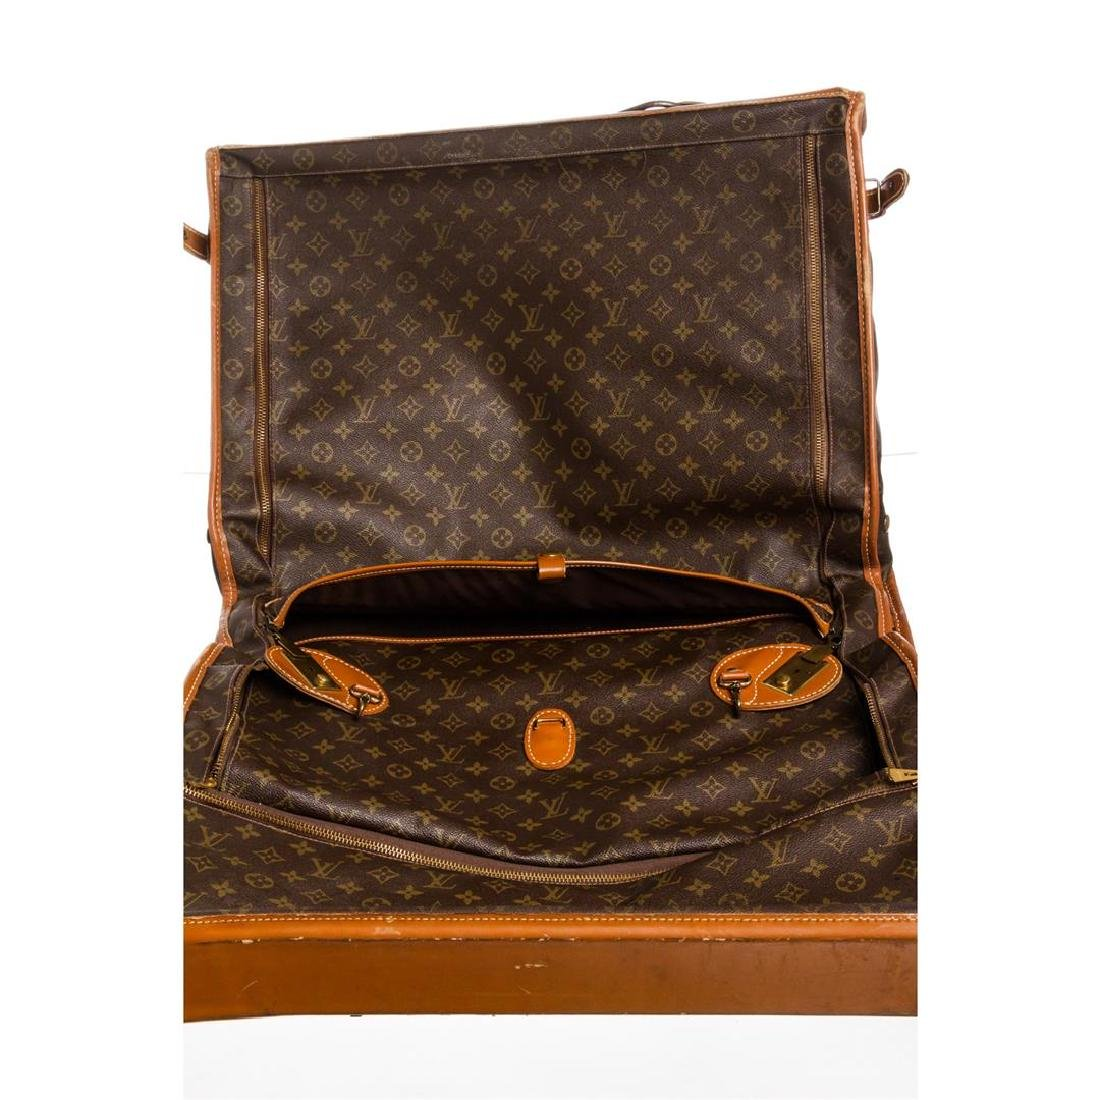 Louis Vuitton Monogram Canvas Leather Vintage Garment - 5